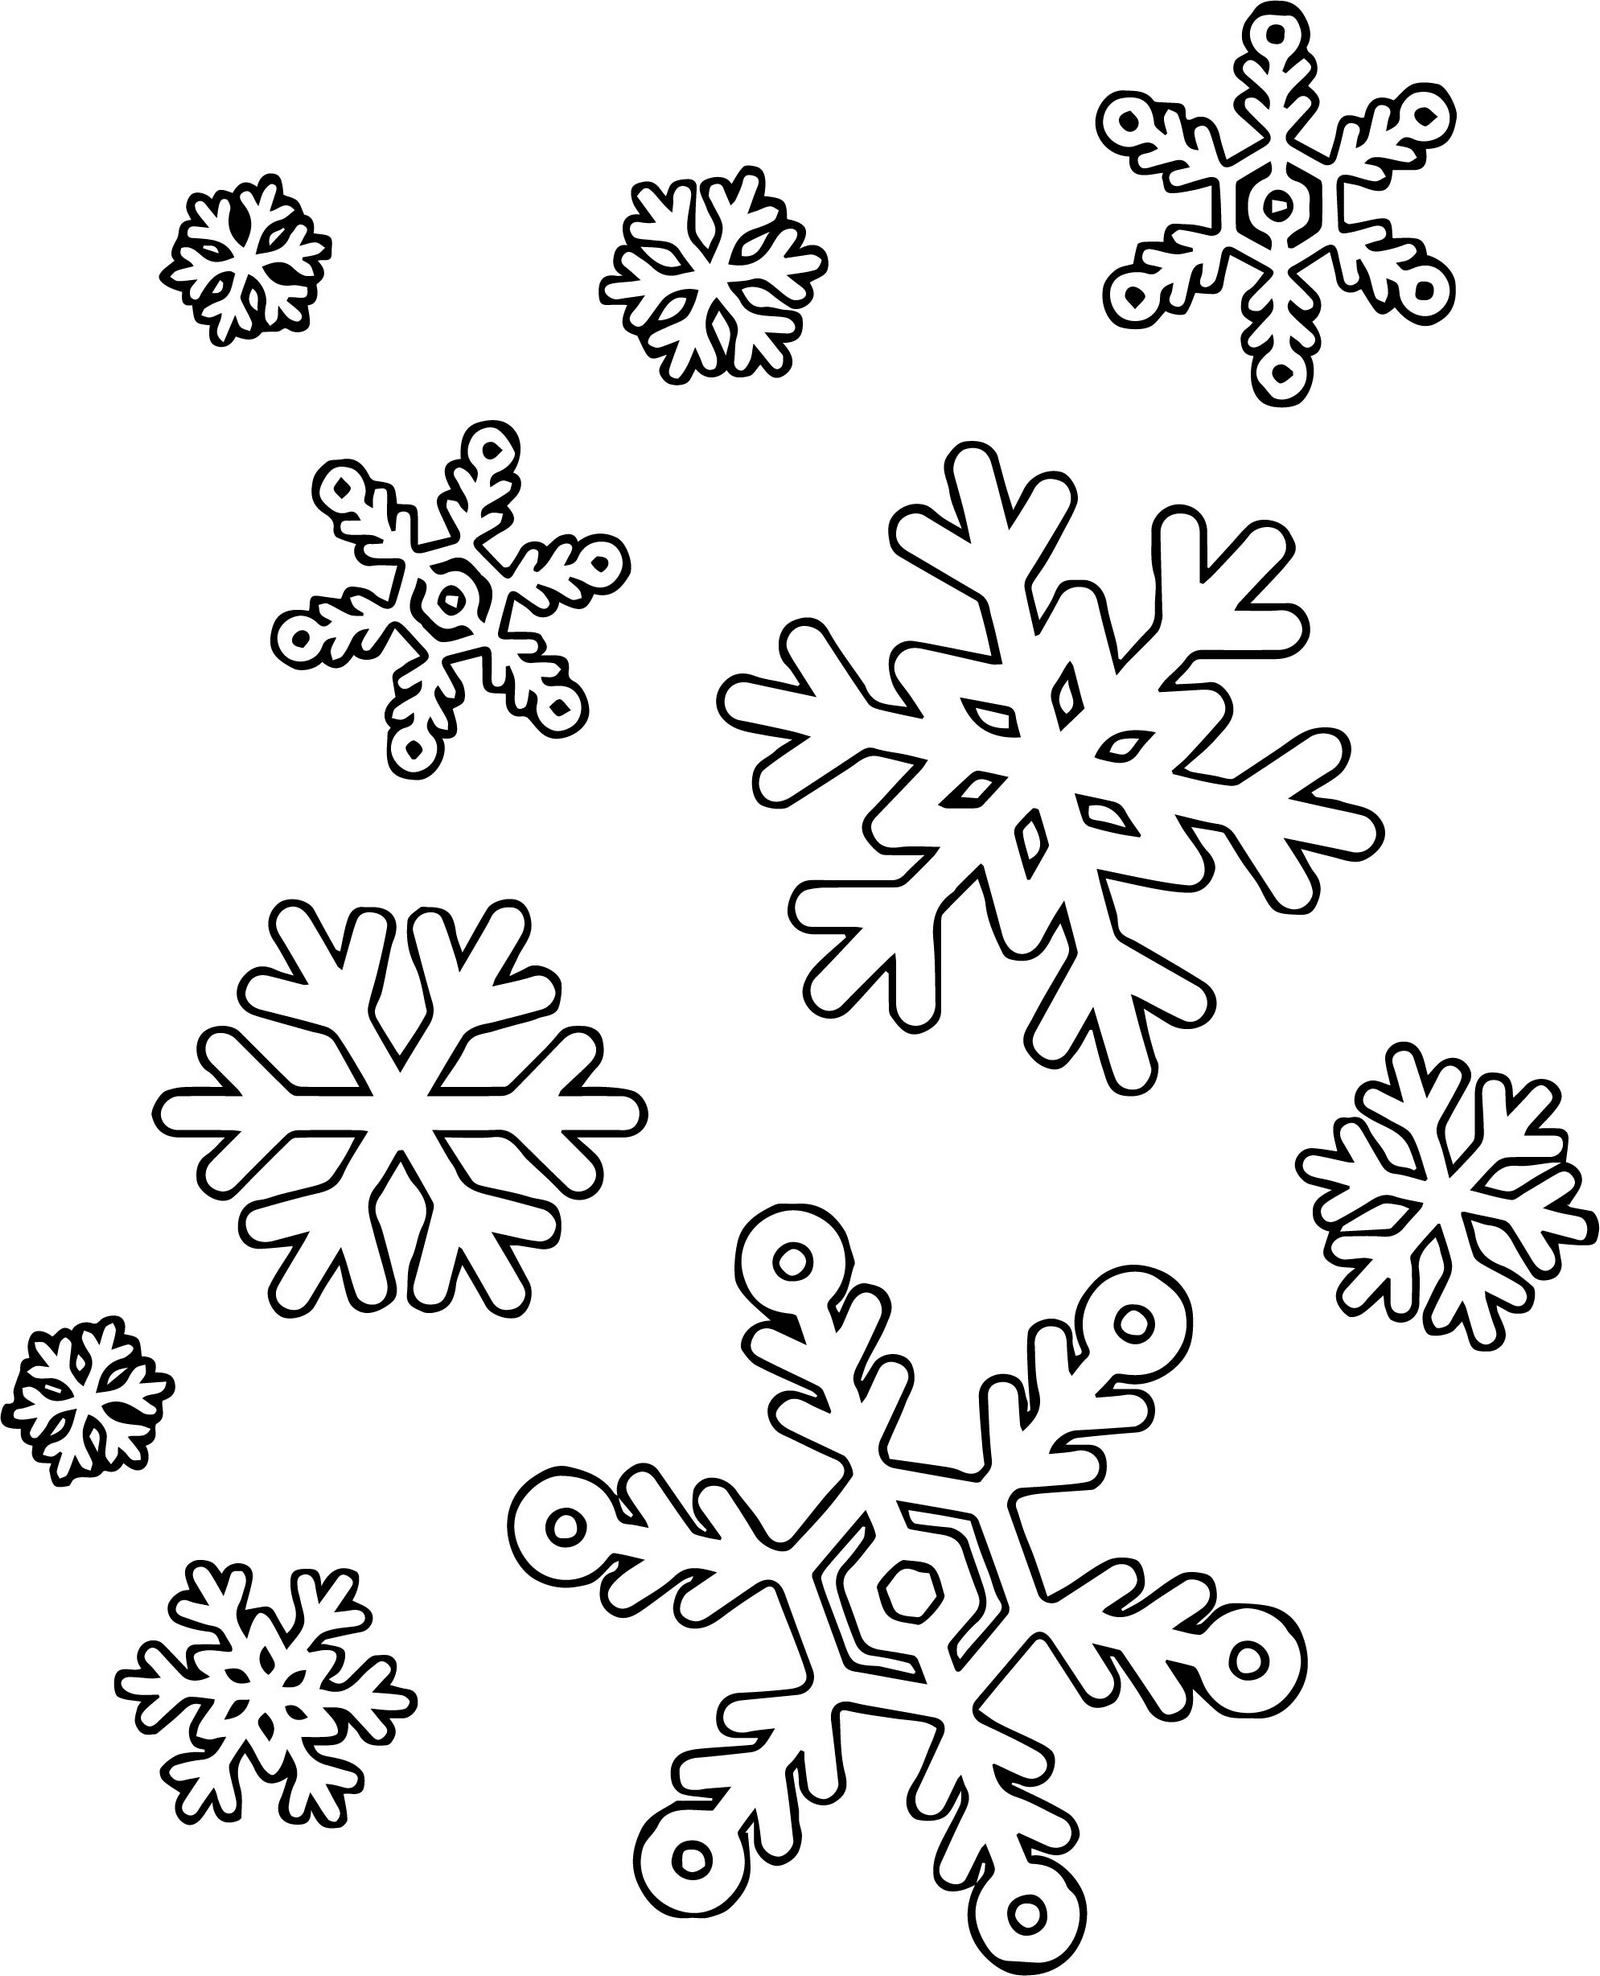 fun and easy snowflake coloring winter christmas snowflakes label skeleton worksheet for coloring pages Snowflakes Coloring Page